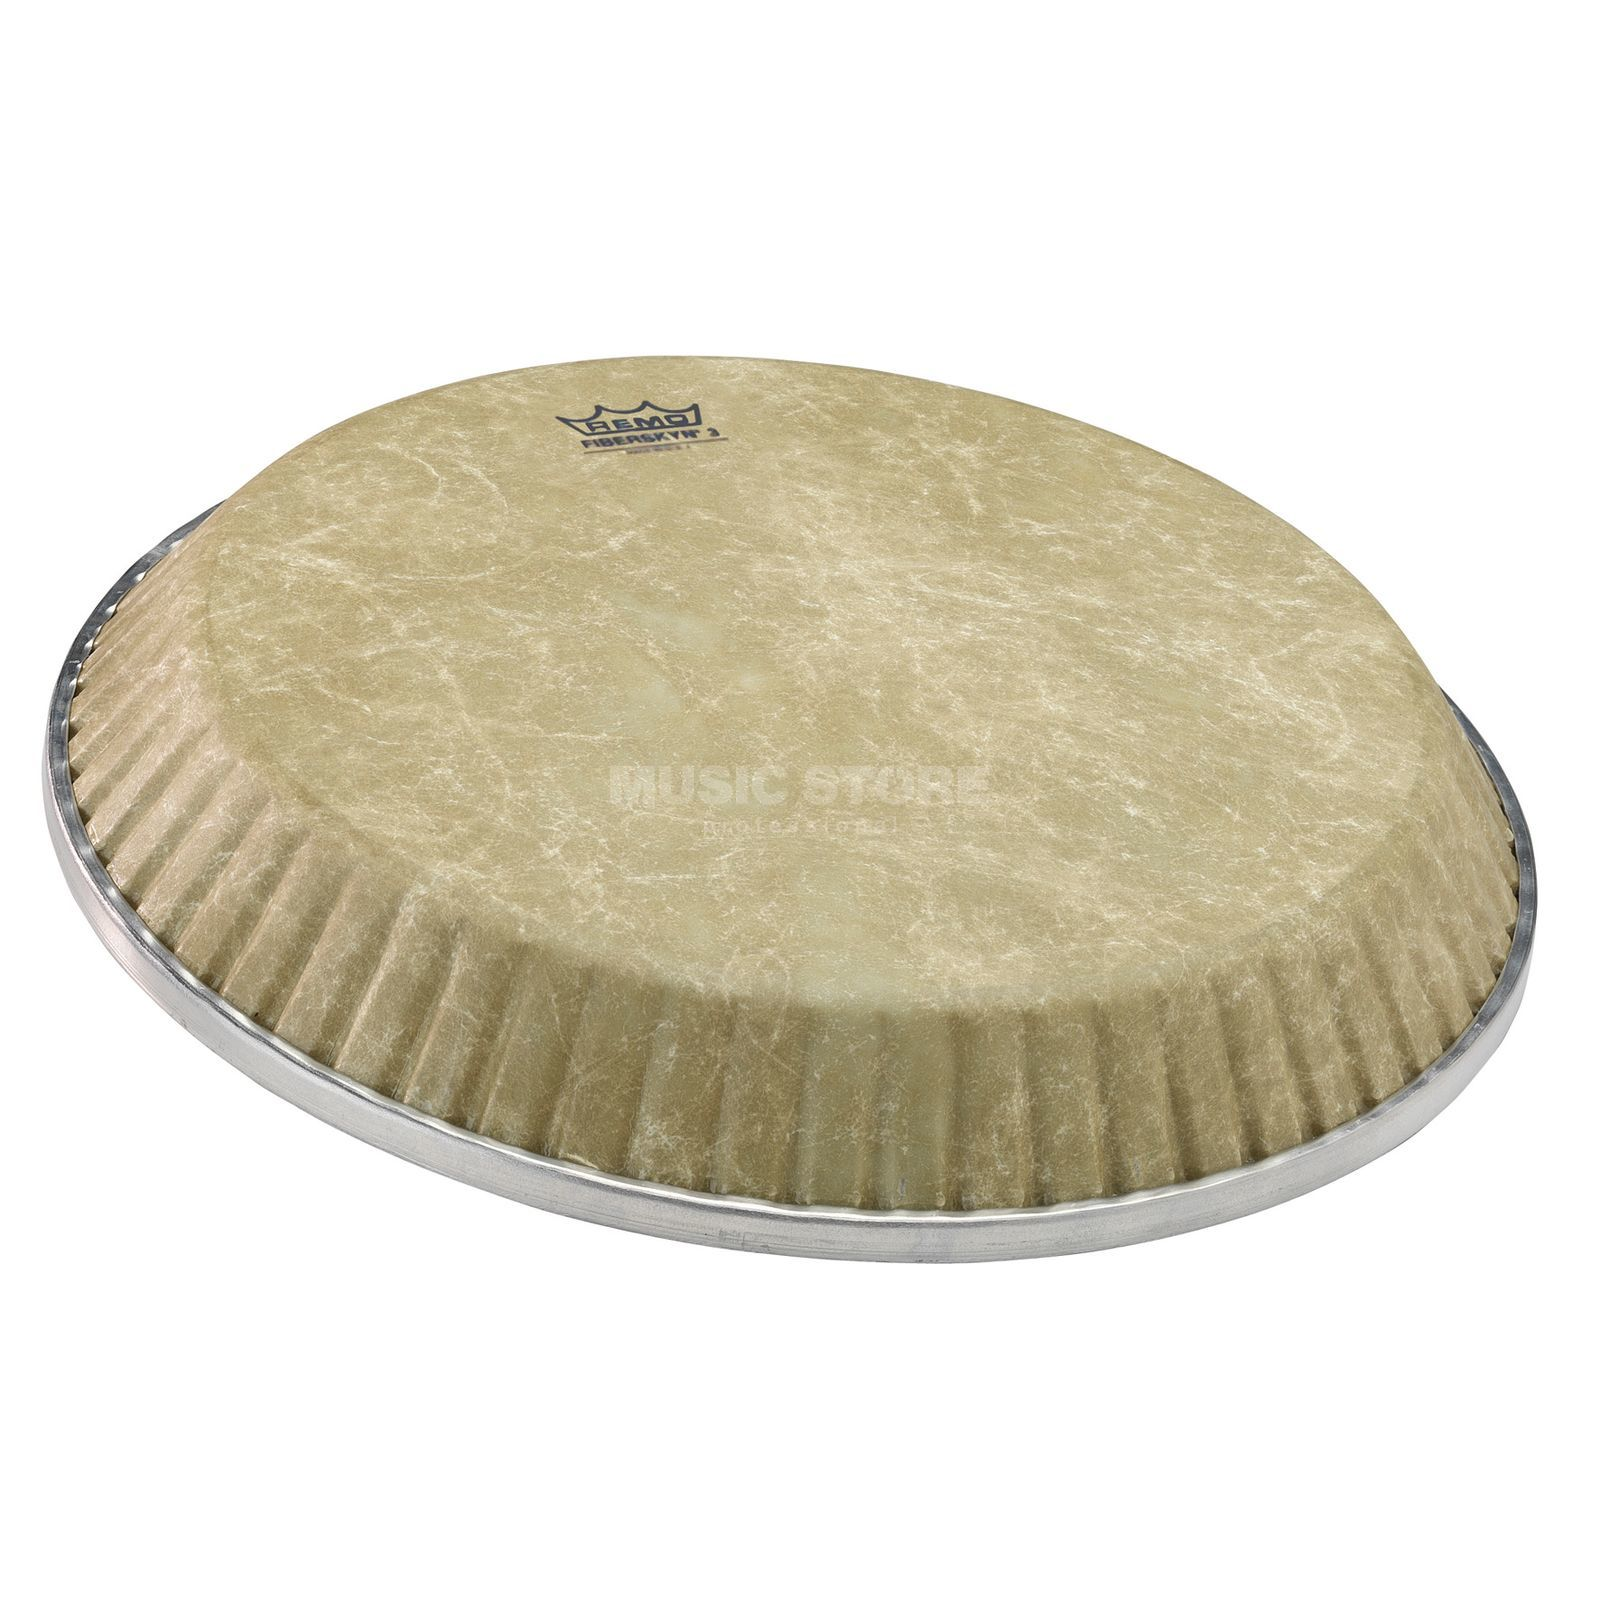 "Remo CongaFell Fiberskyn 3, 11"", M4-1106-F6-D4 Product Image"